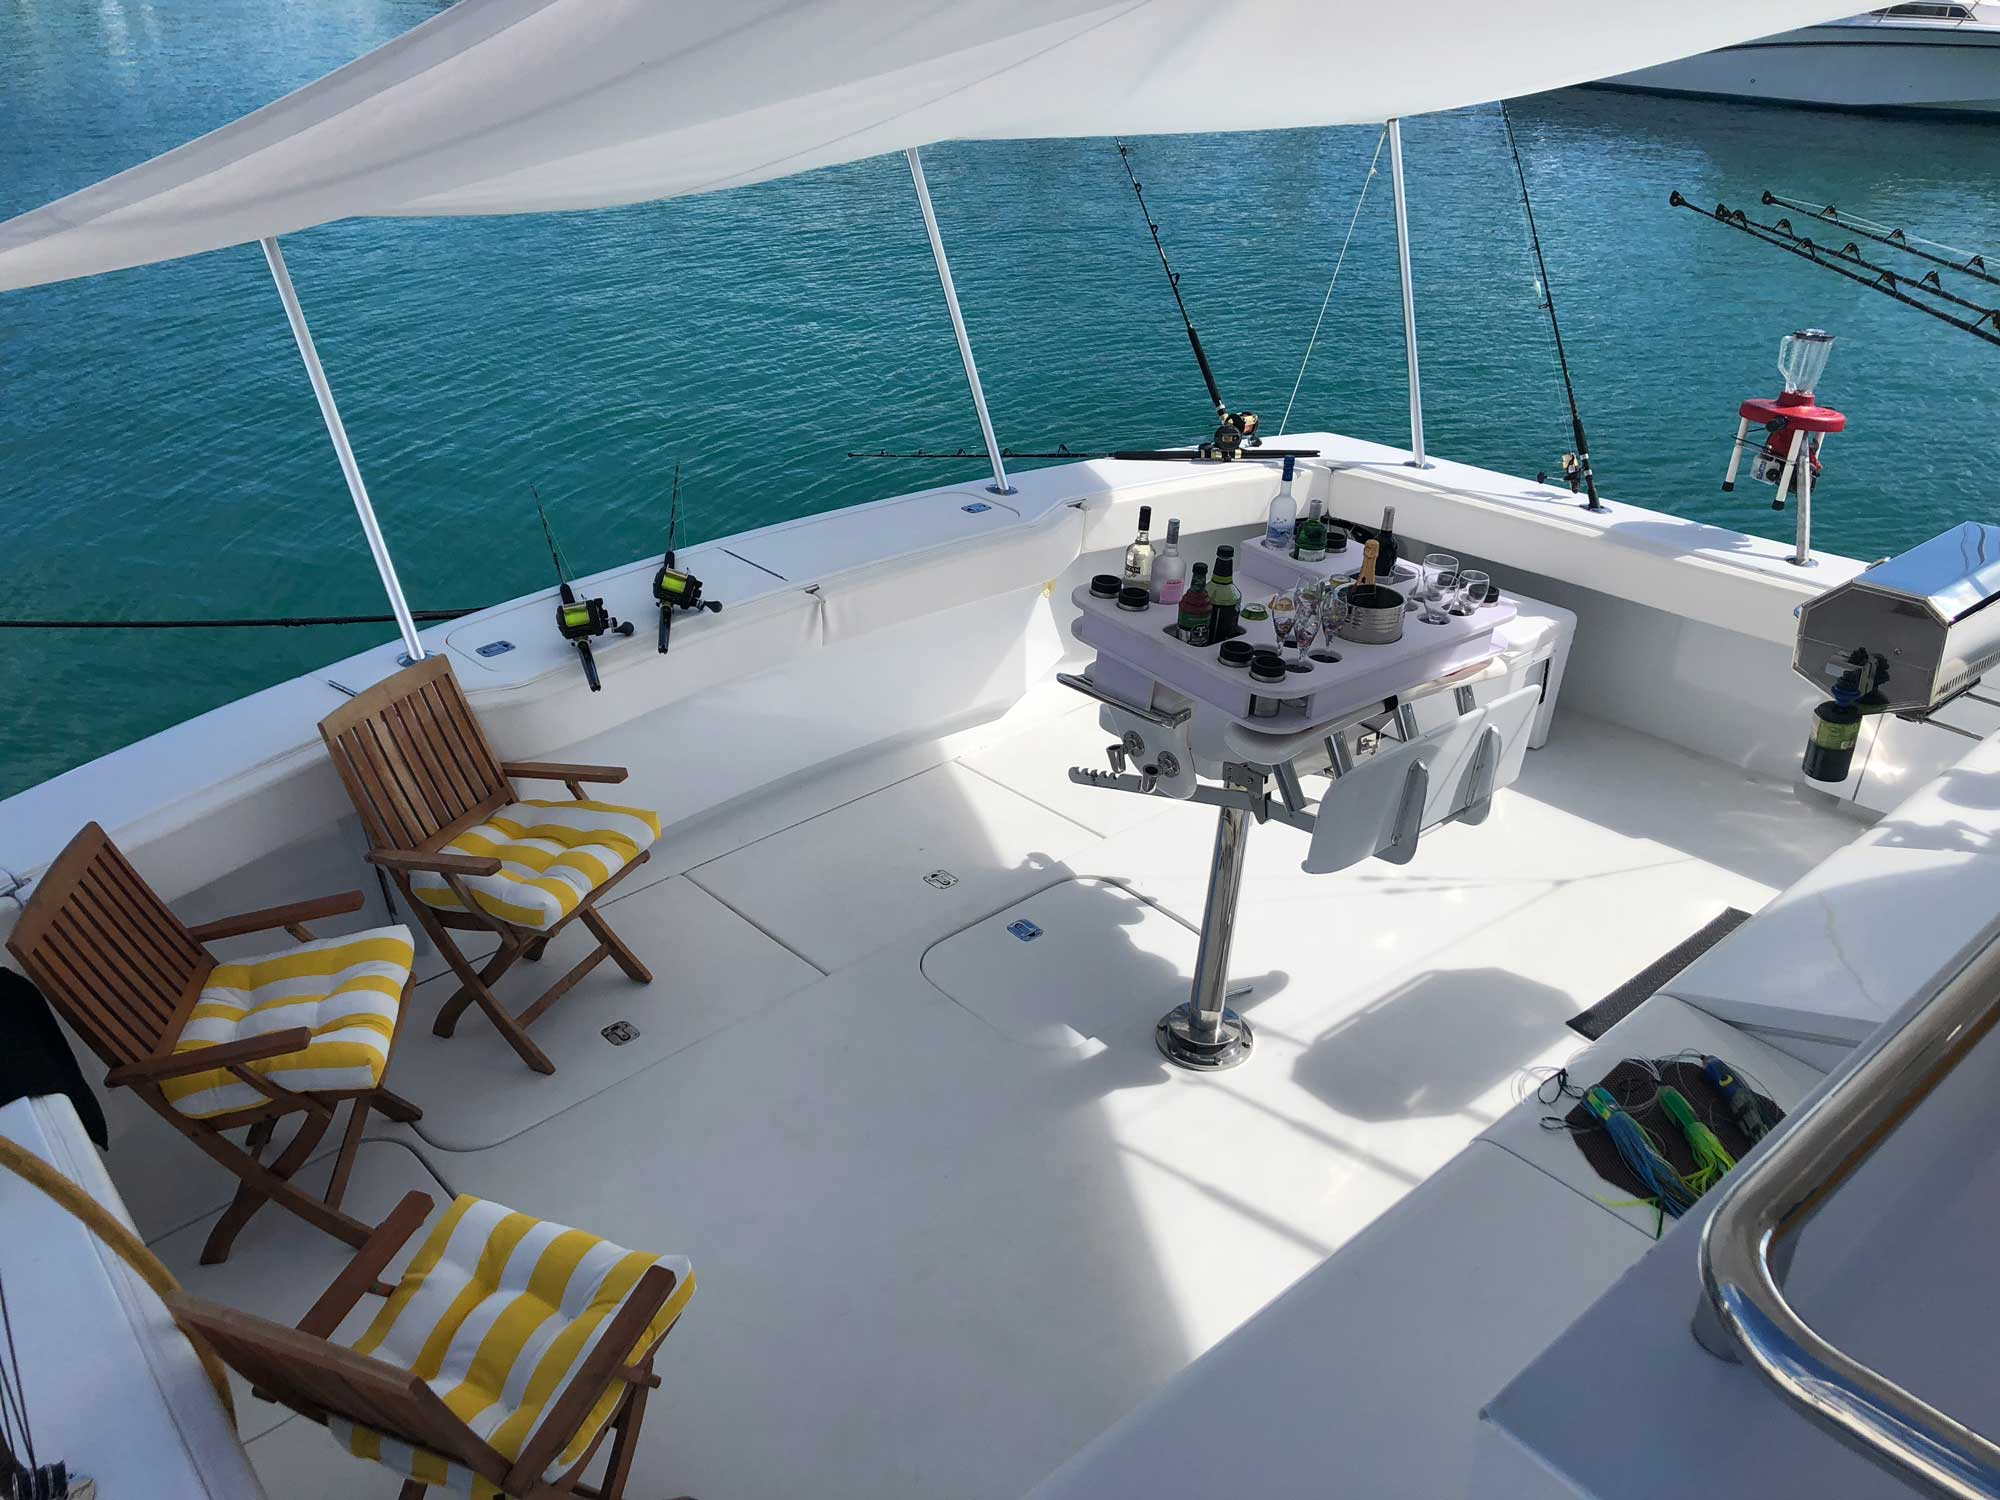 Relax or fish aboard OneNet's spacious decks.